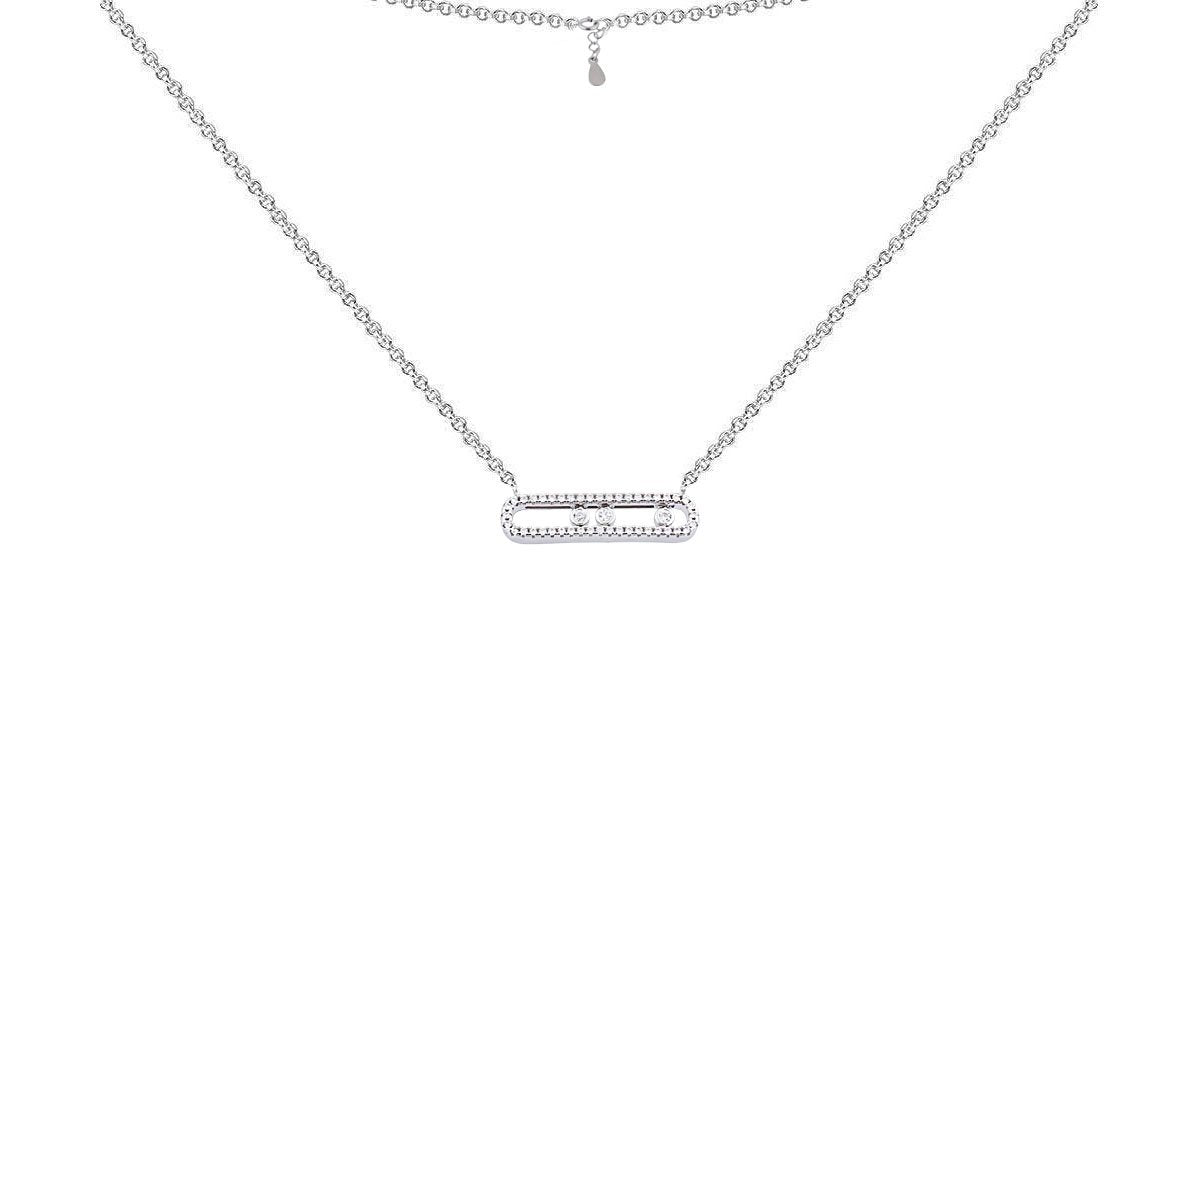 Necklace N1293 - 925 Sterling Silver